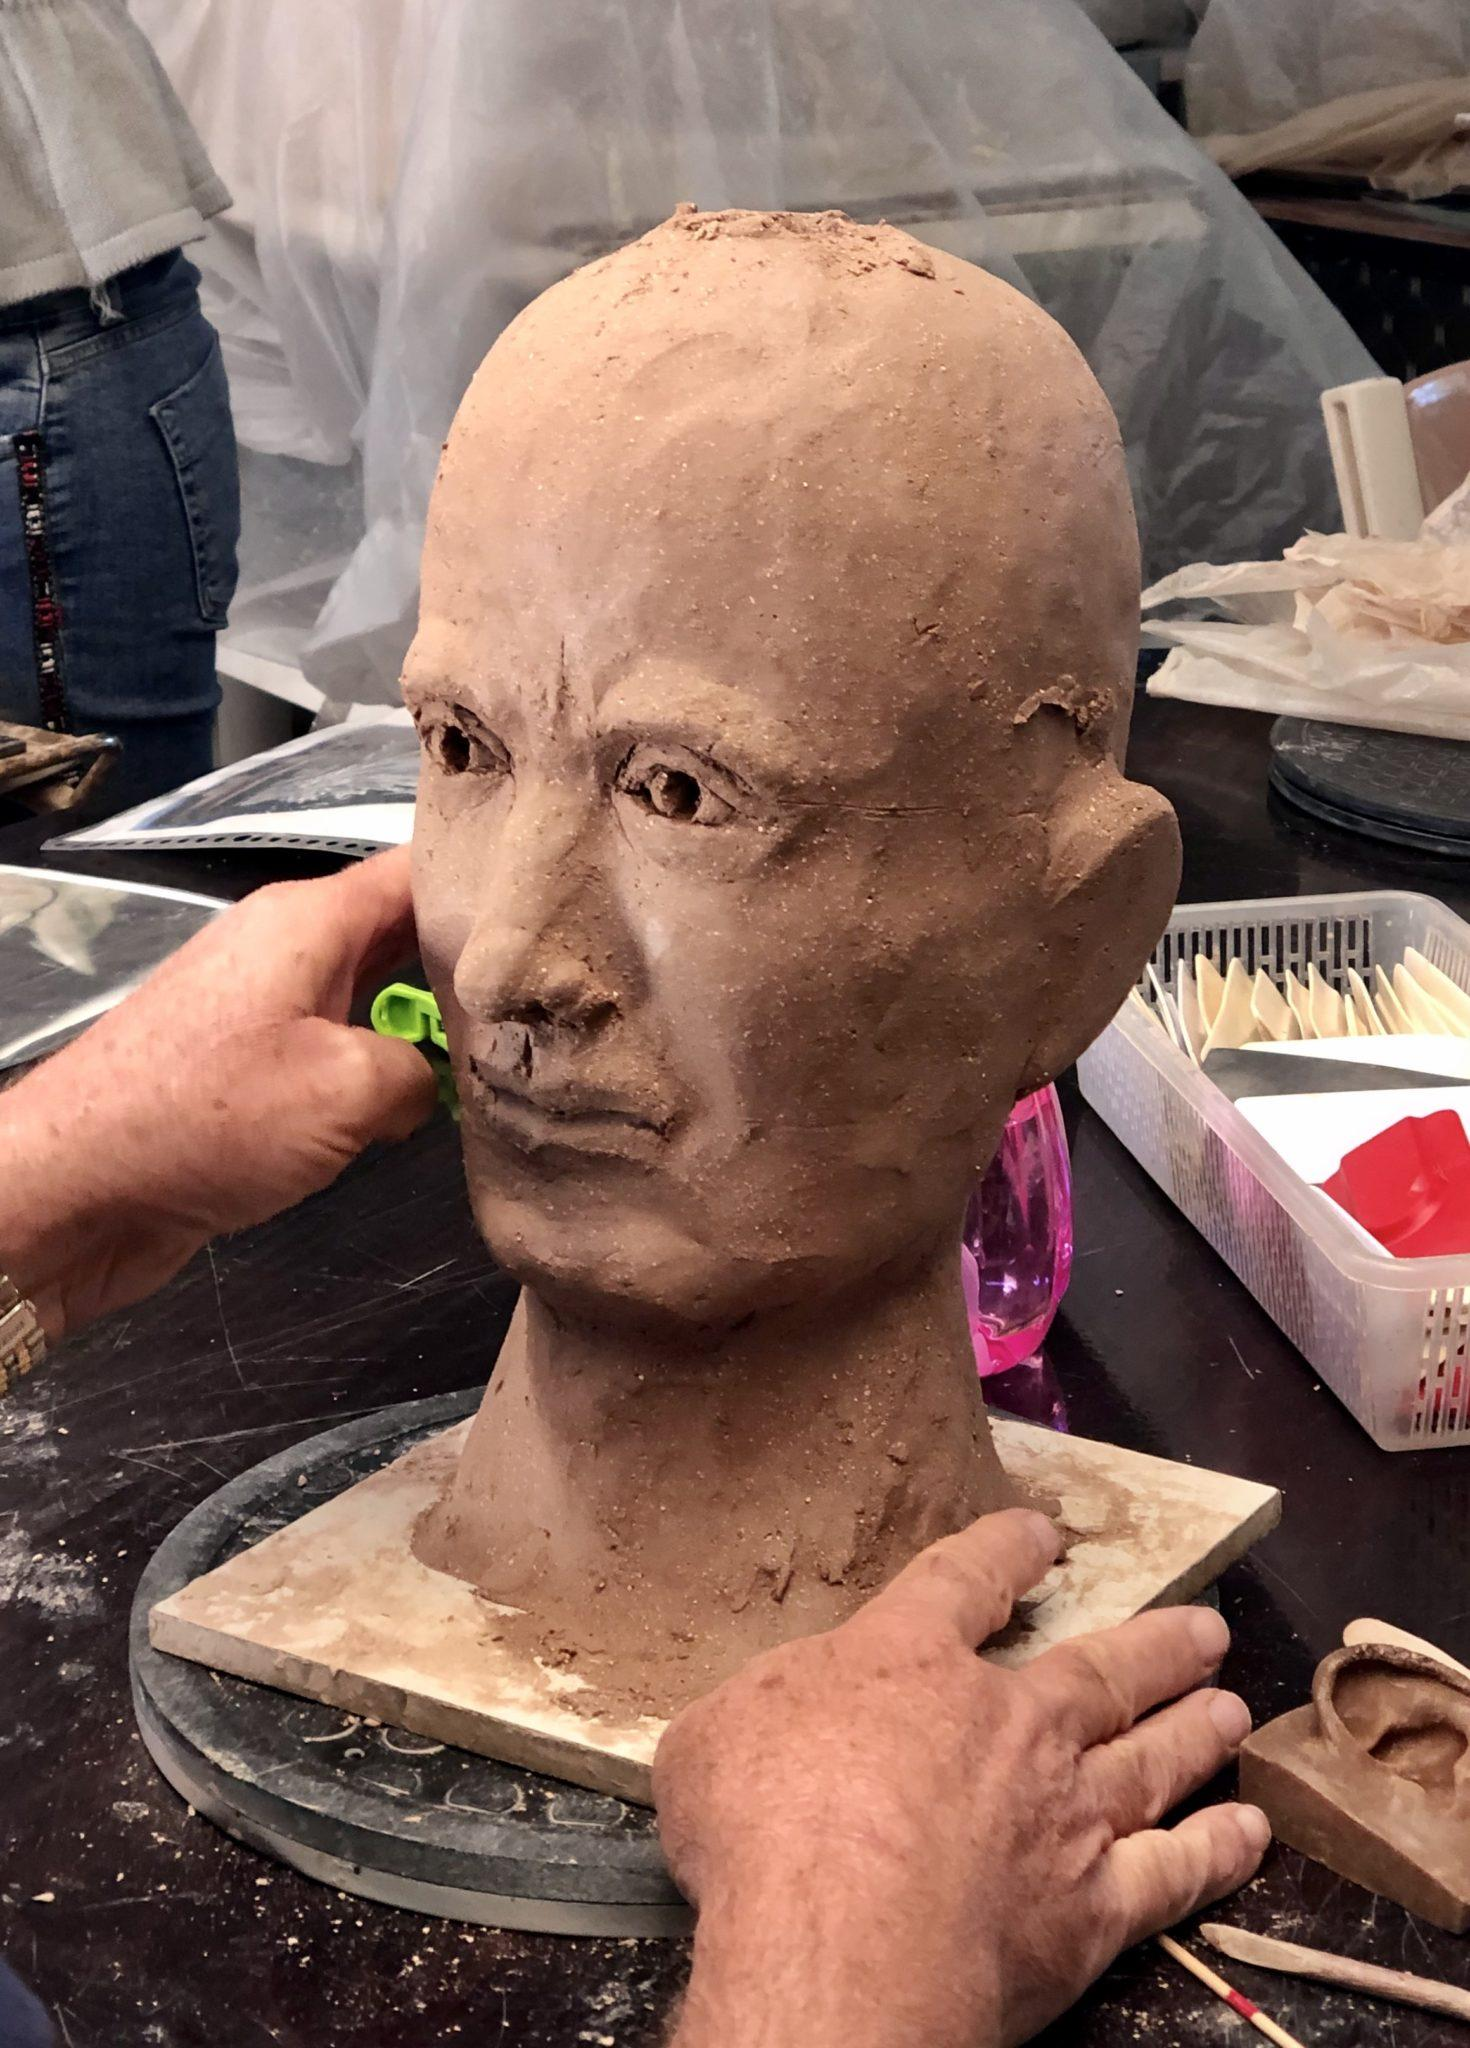 progressing very well with his first clay head sculpture